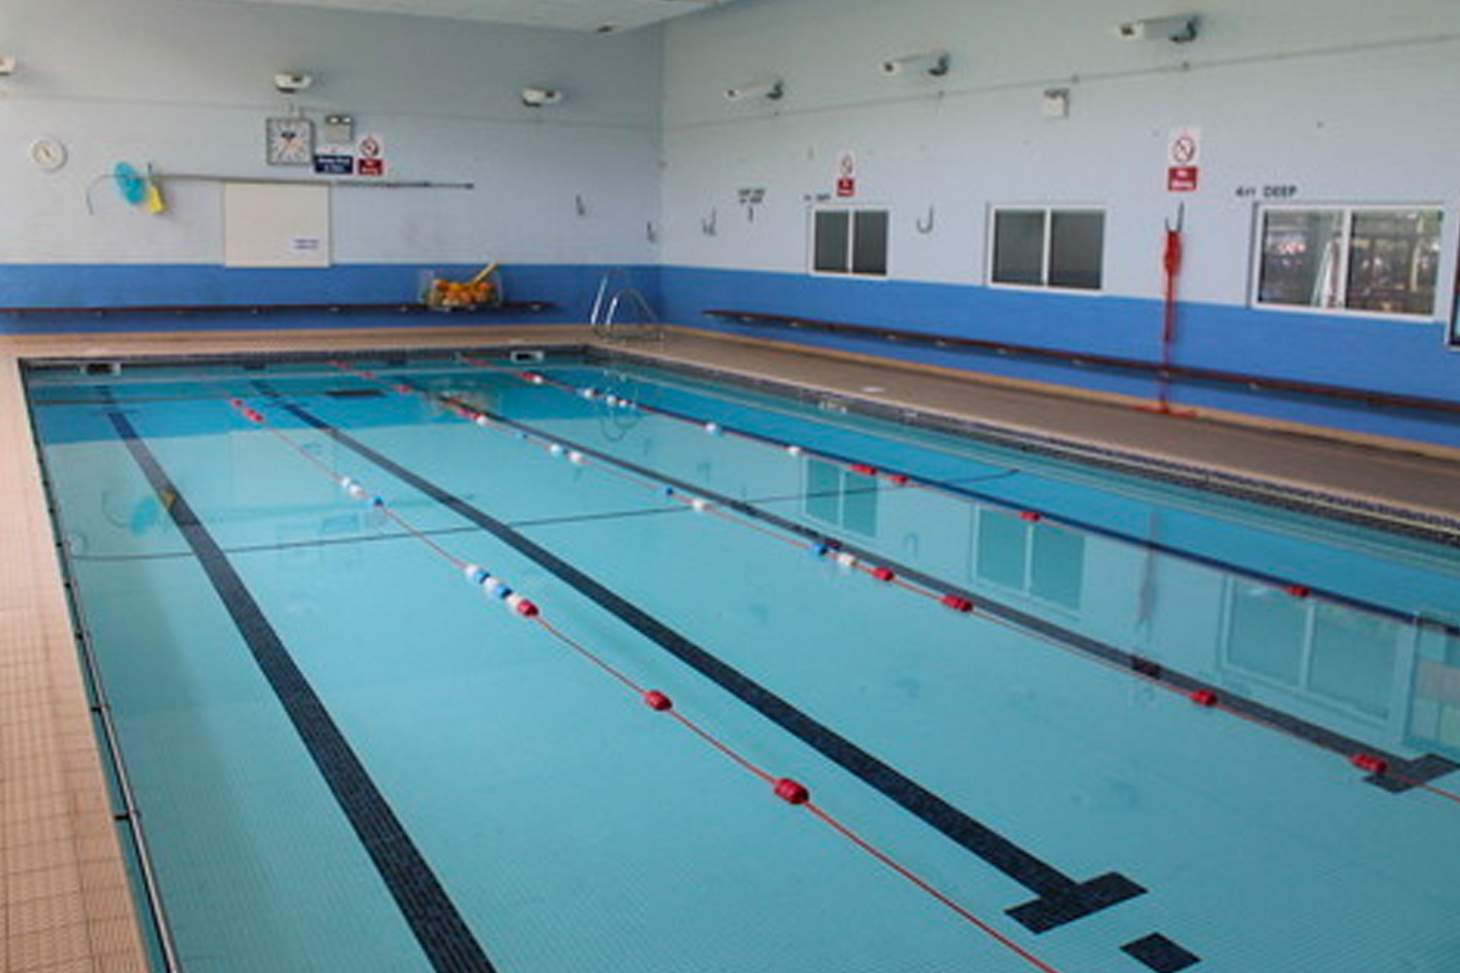 Mayflower High School 20m pool | Water swimming pool